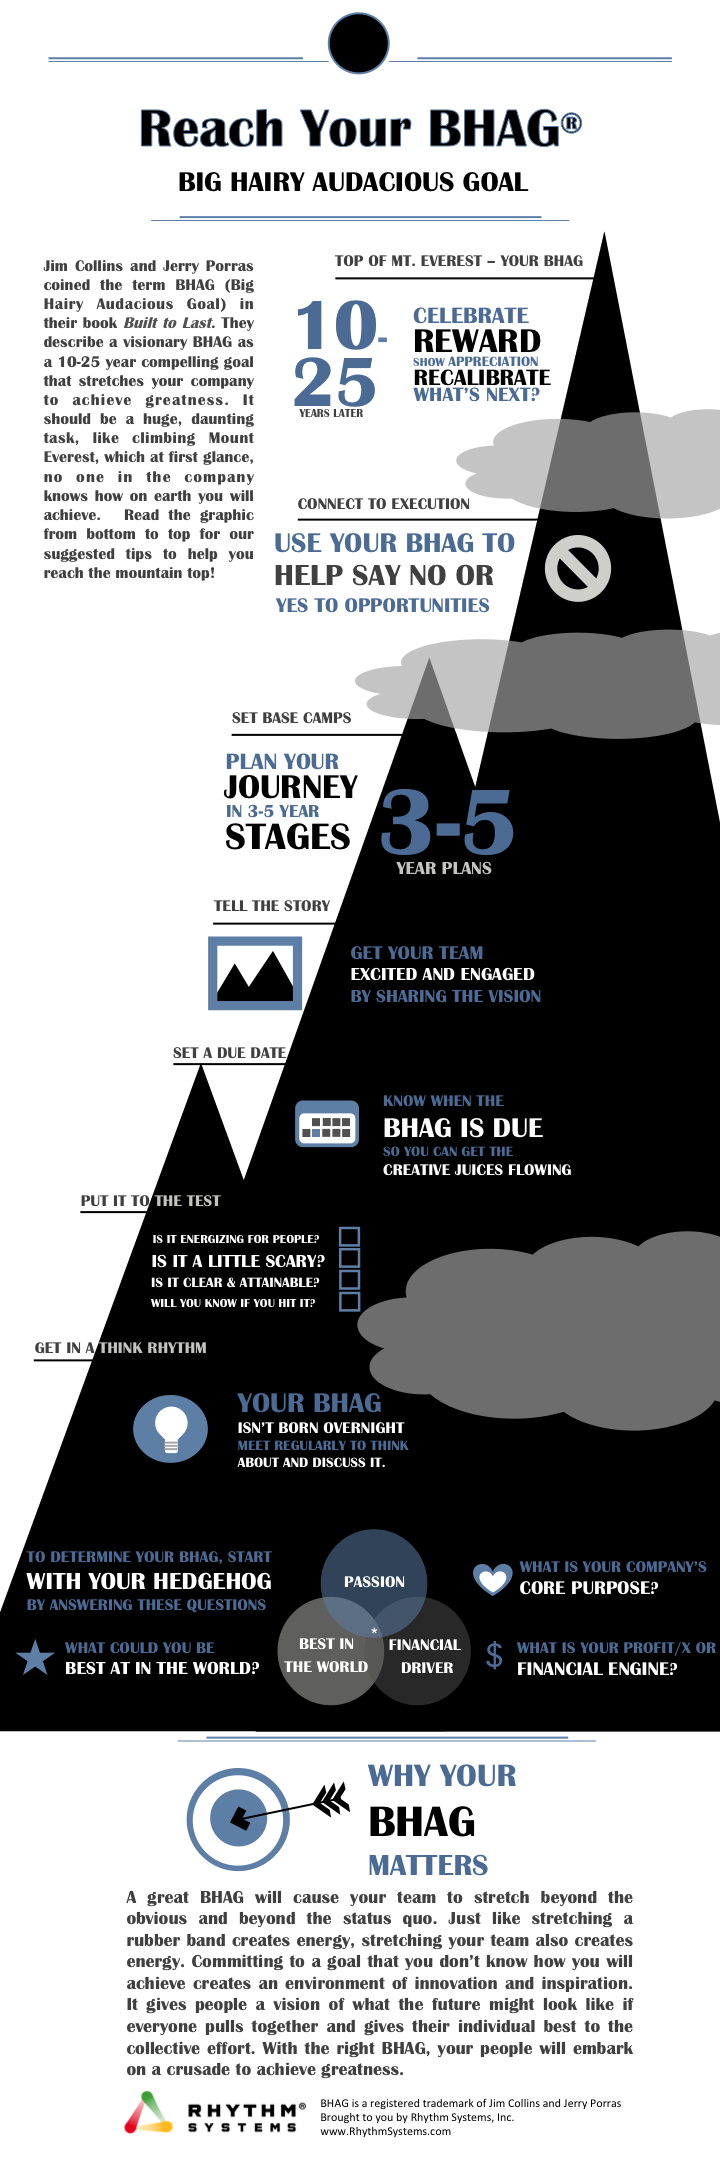 Reach Your BHAG infographic Big Hairy Audacious Goal